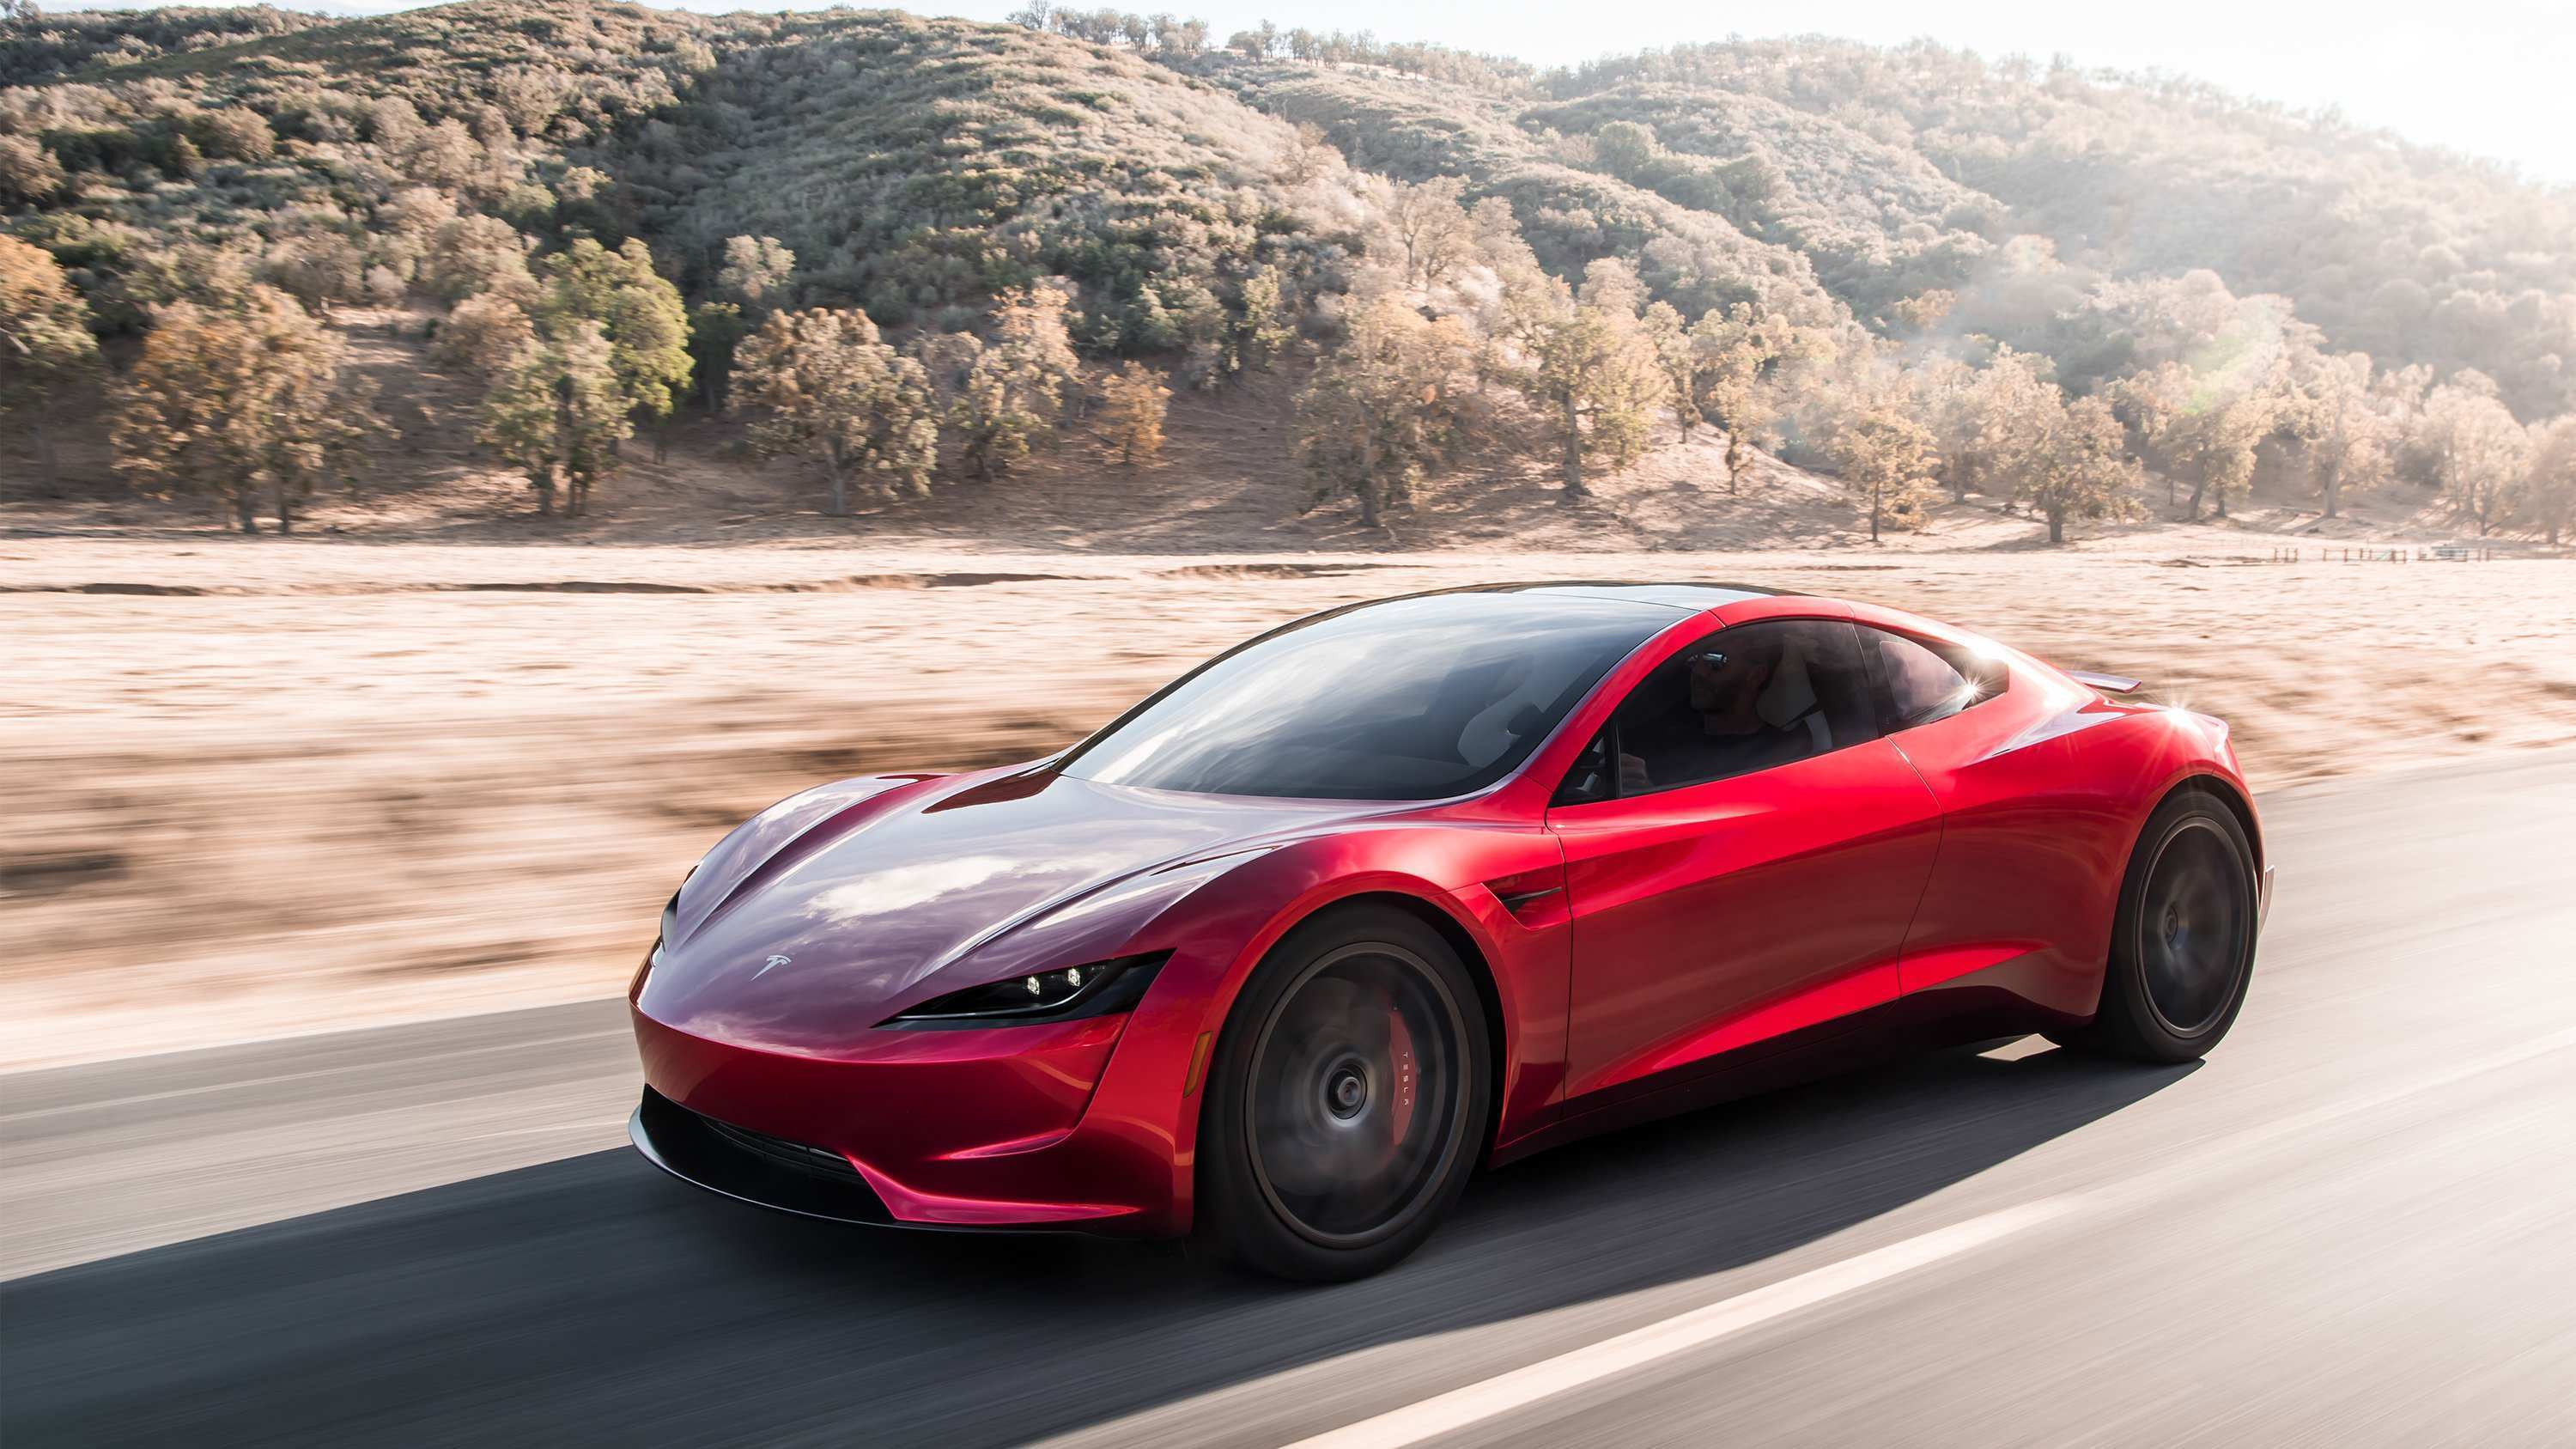 30 A 2020 Tesla Roadster 0 60 Reviews